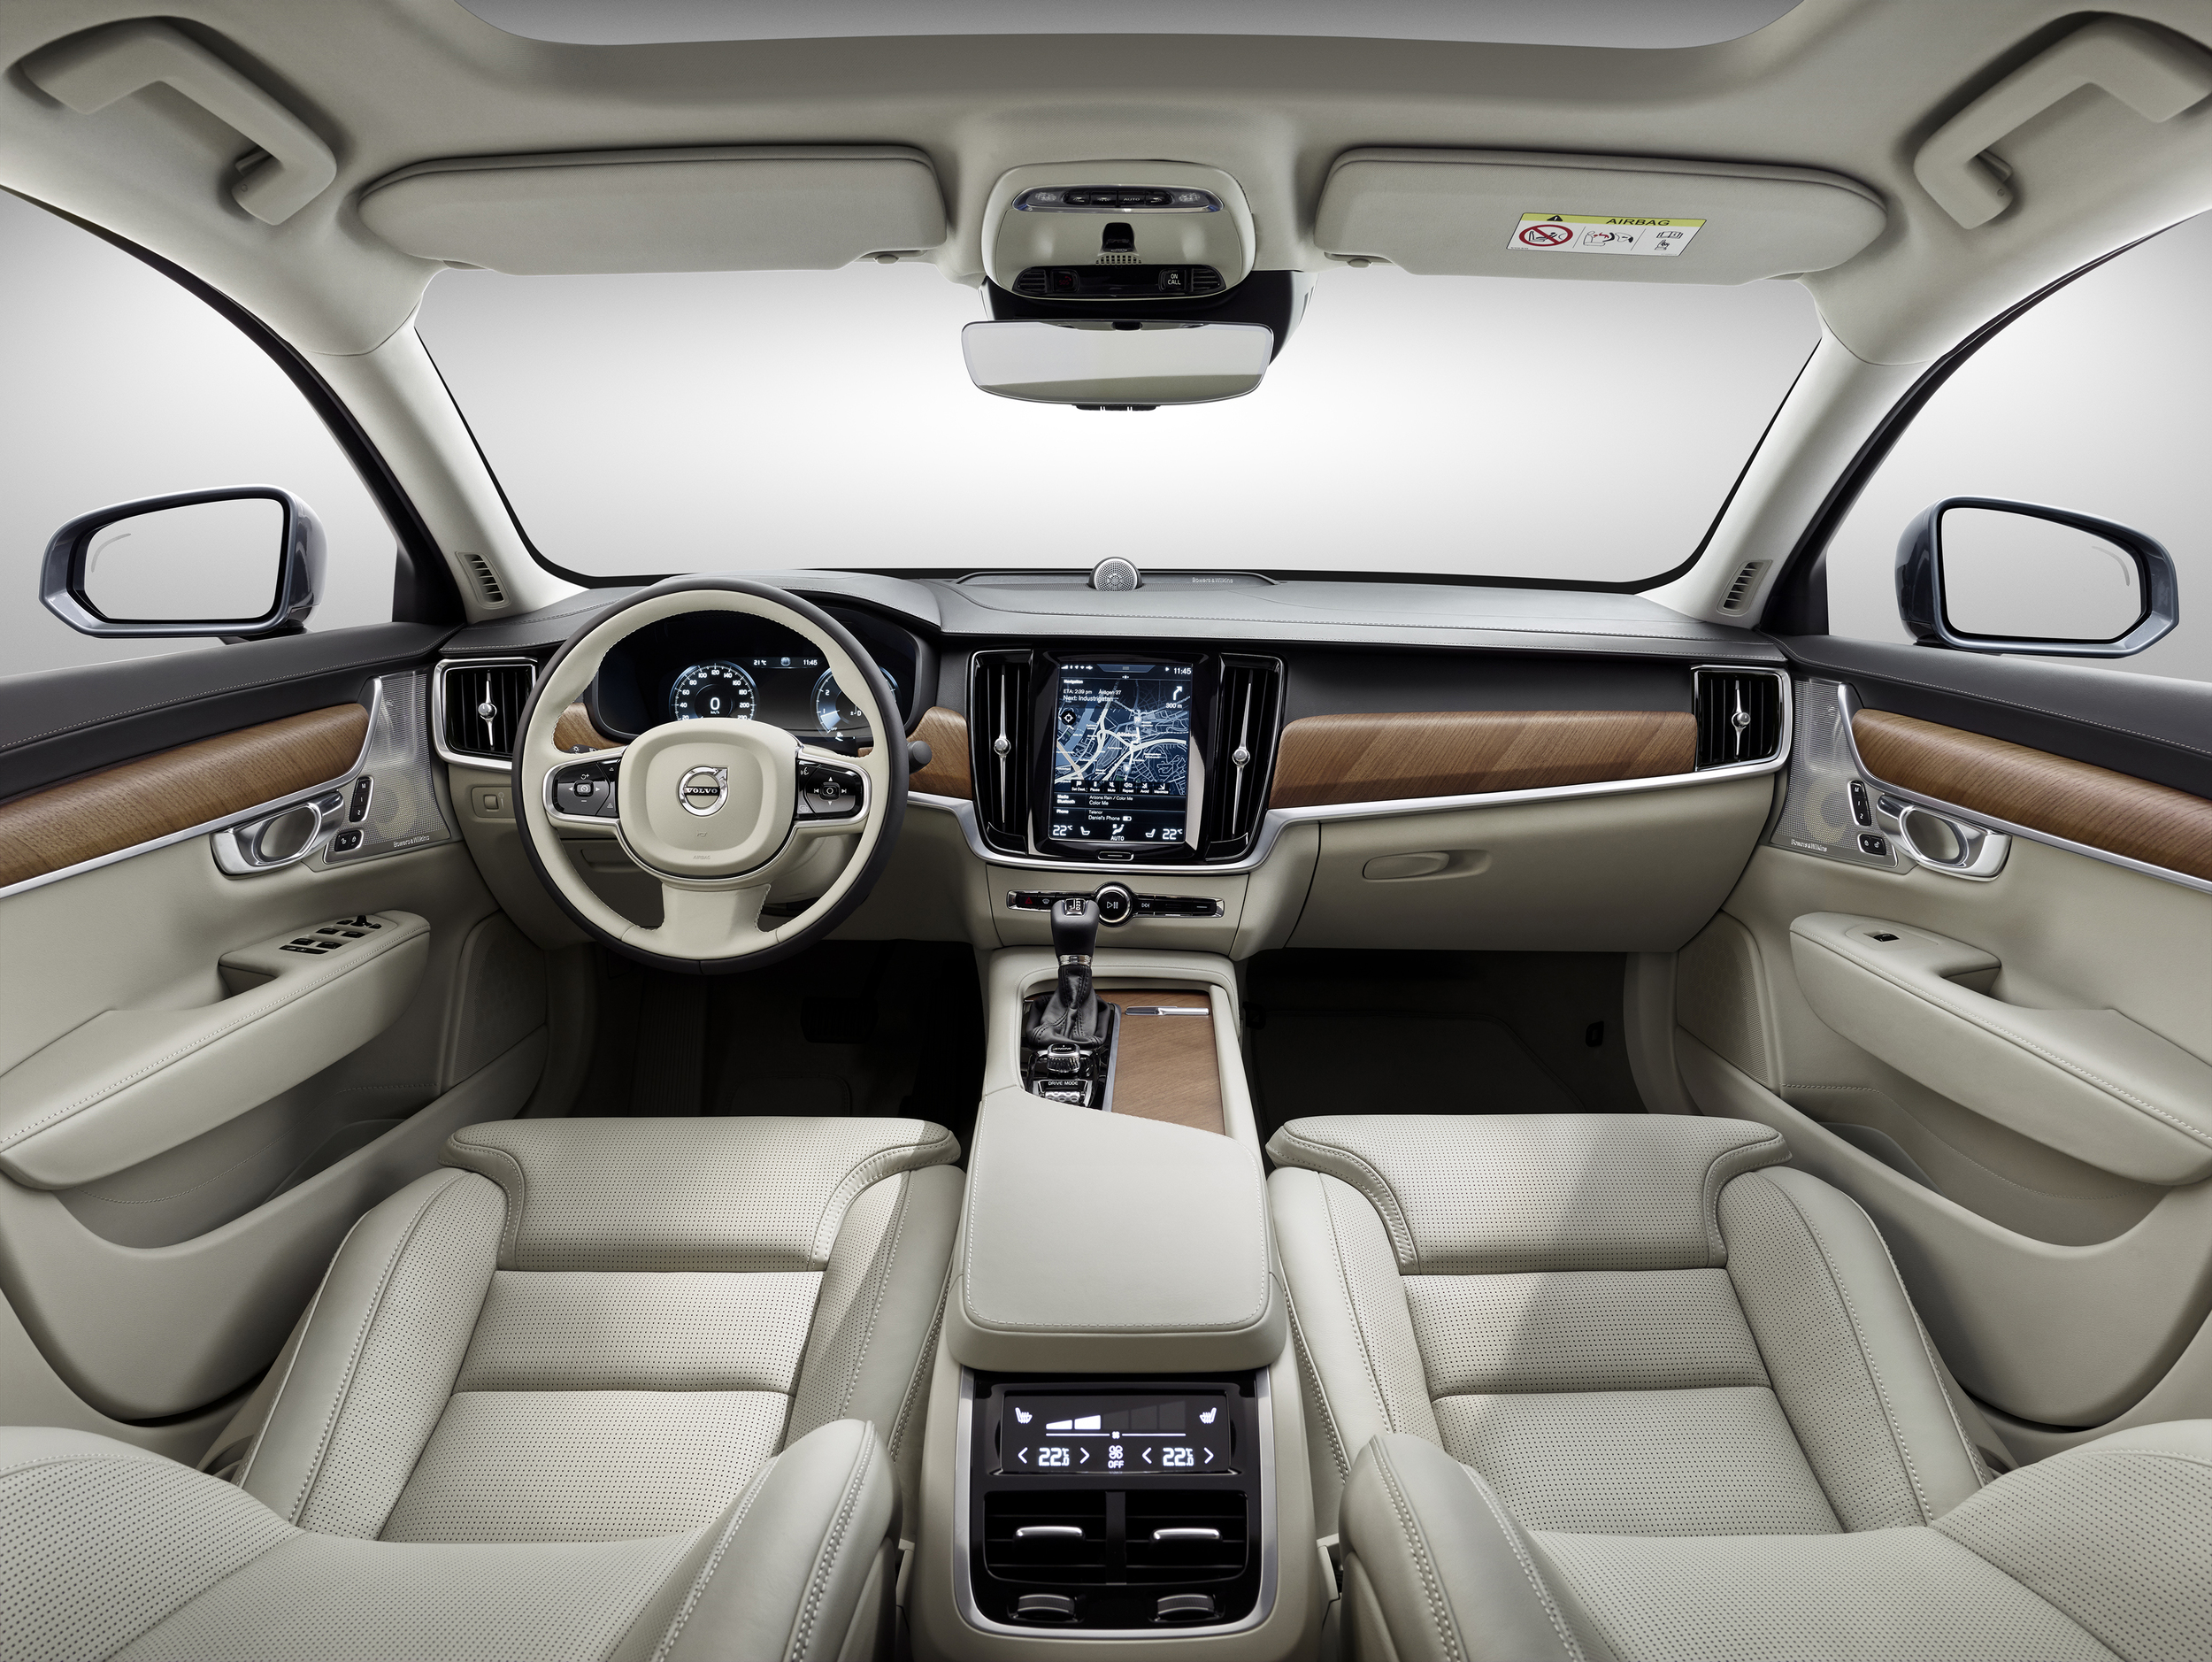 interior-blond-volvo-s90-1